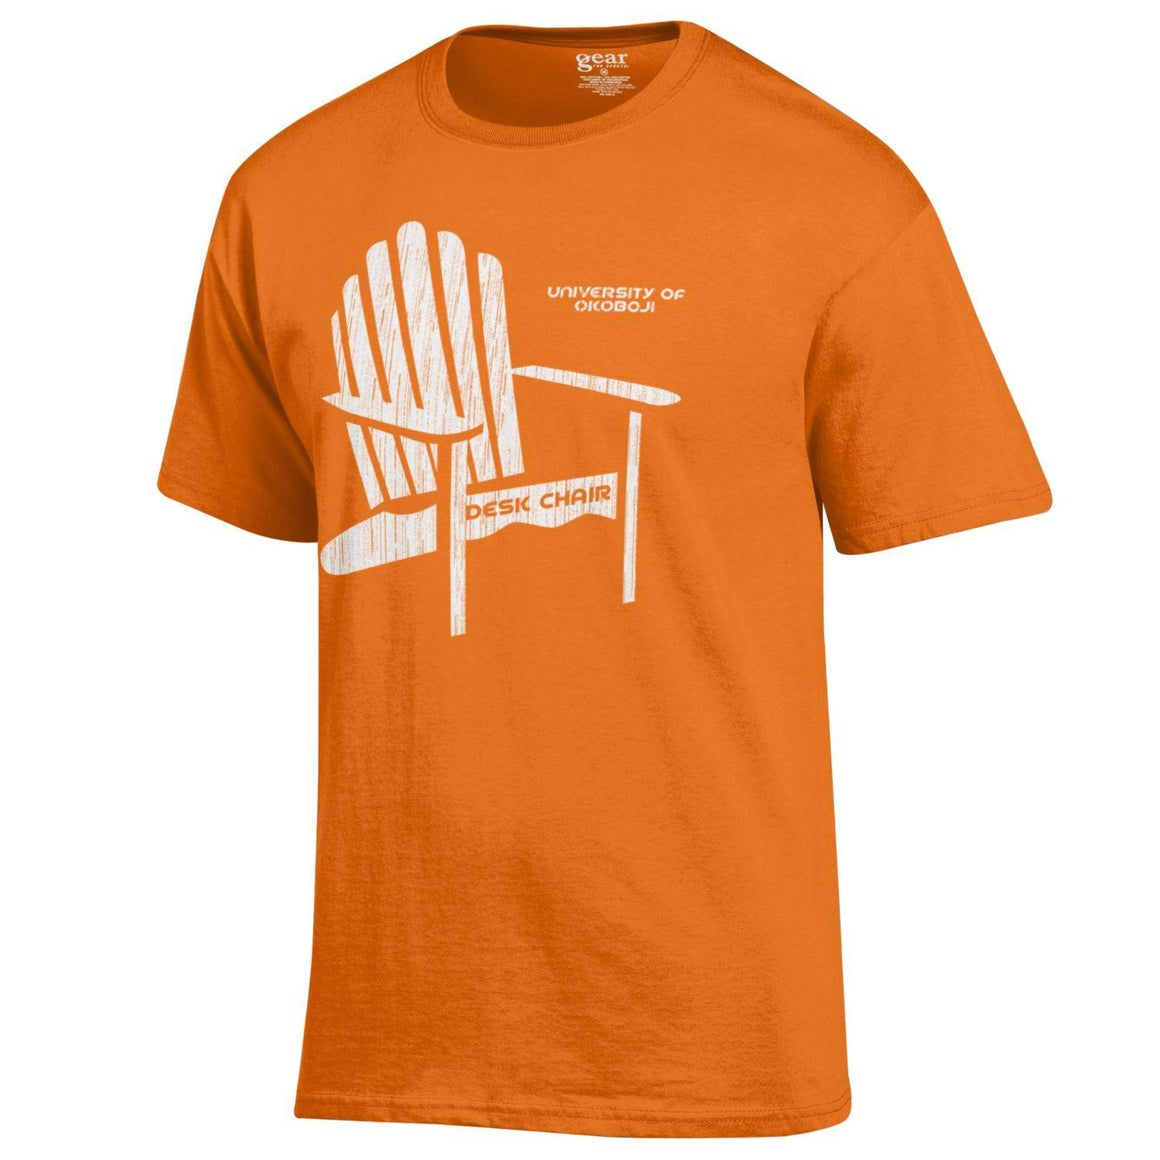 Desk Chair Tee